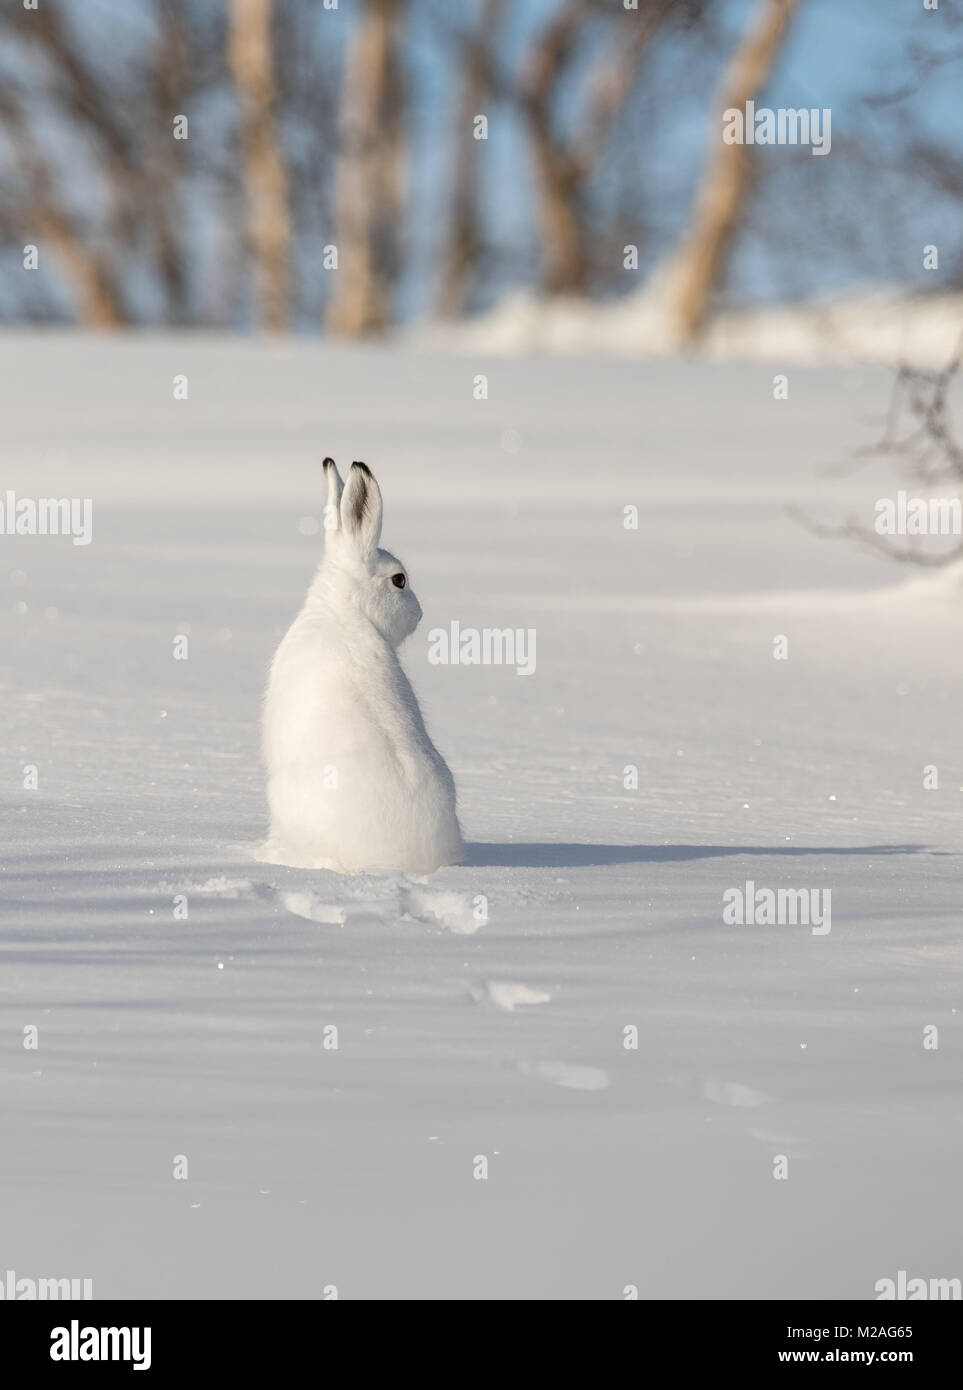 The mountain hare, Lepus timidus, in winter pelage, sitting in snow, looking right, in the snowy winter landscape - Stock Image